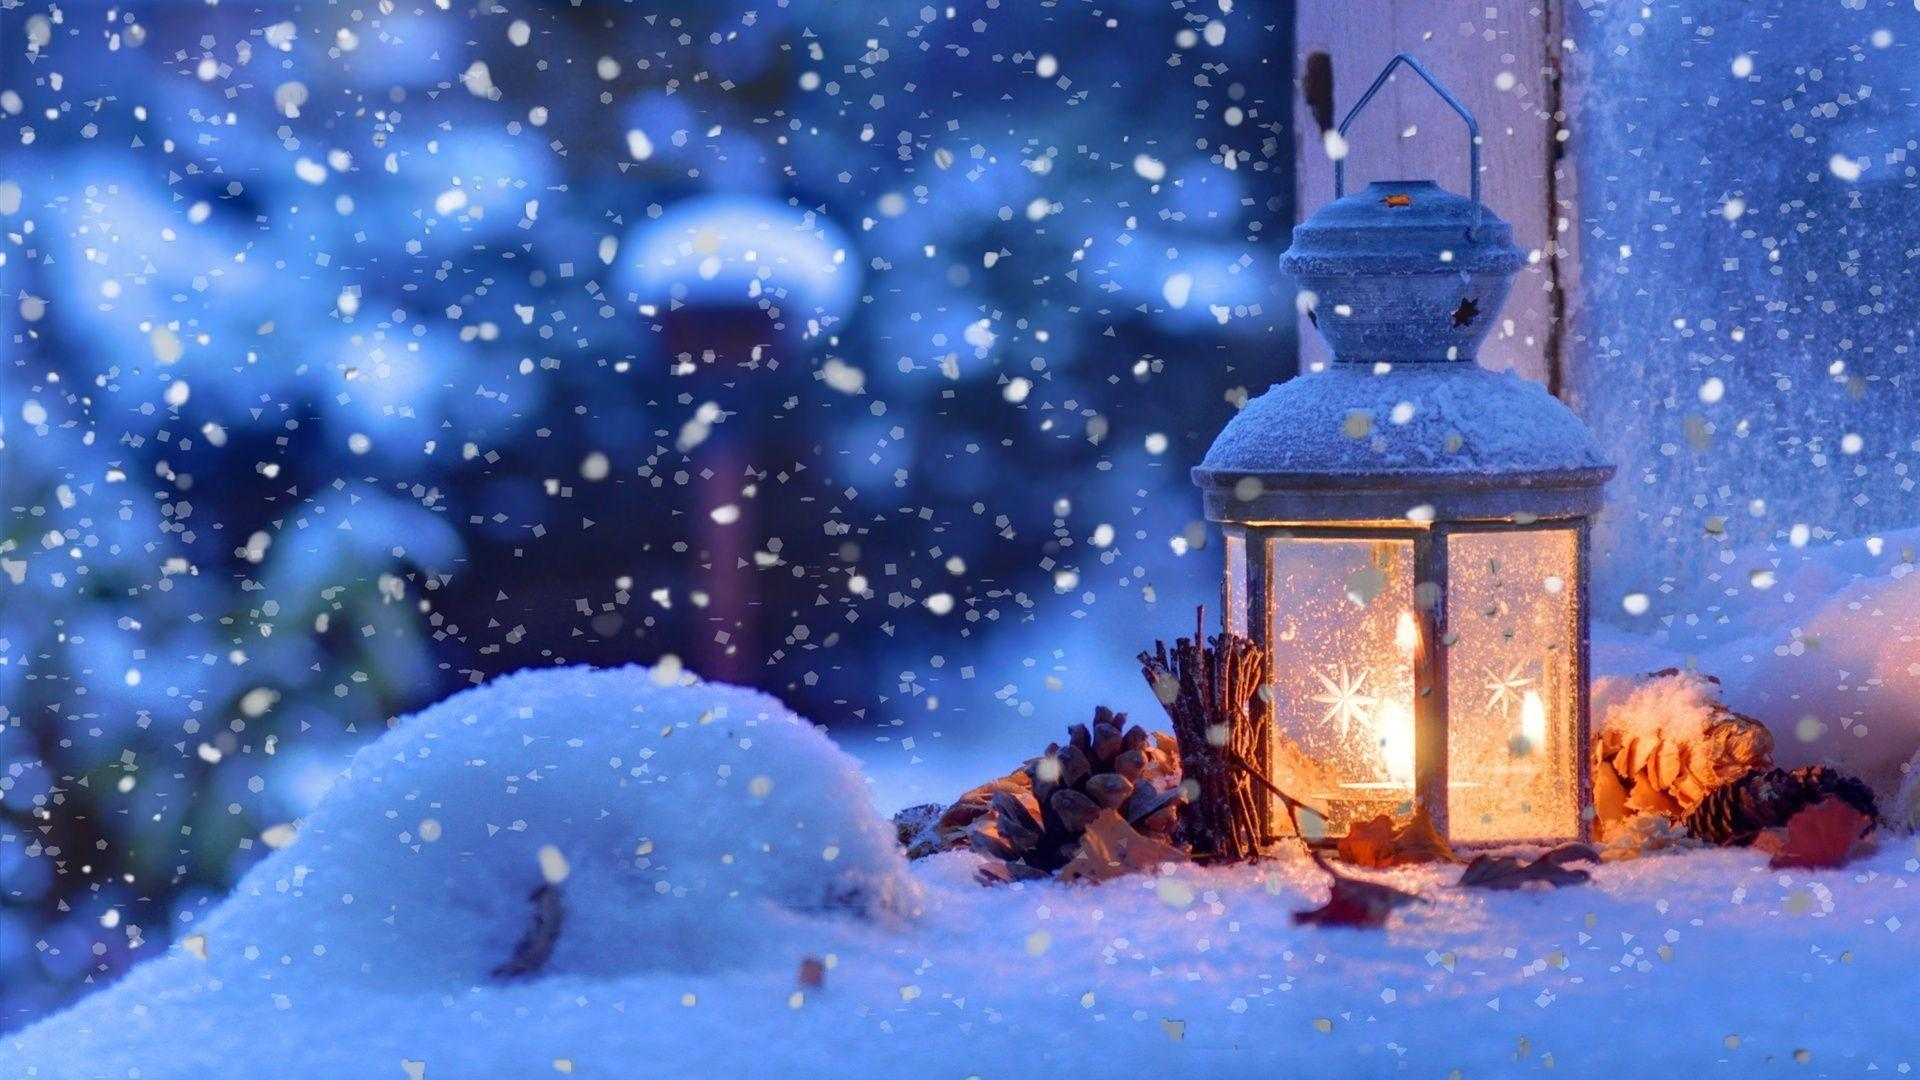 Christmas snow winter, light, snowflakes Wallpaper | 1920x1080 ...